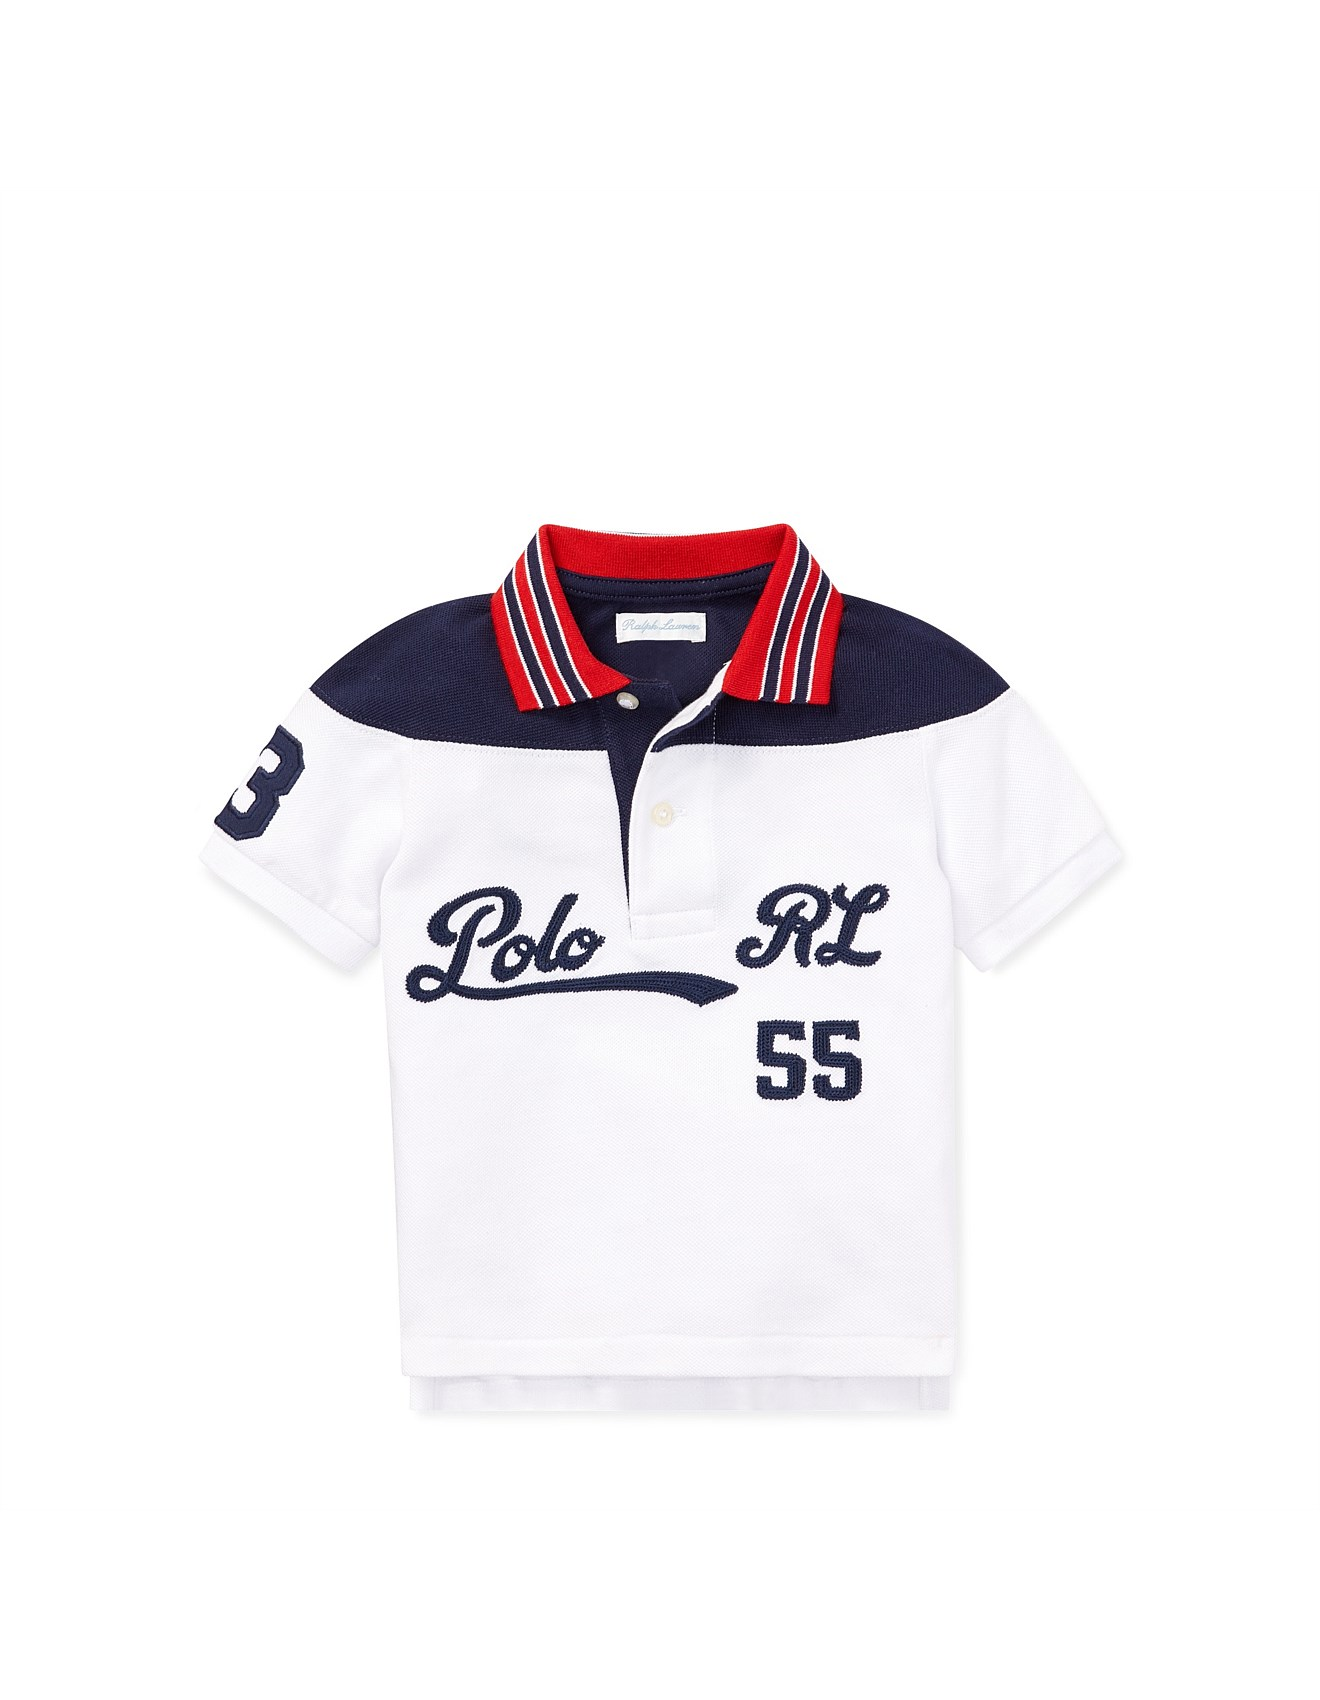 510505f69f Embroidered Cotton Mesh Polo (6-24 Months)